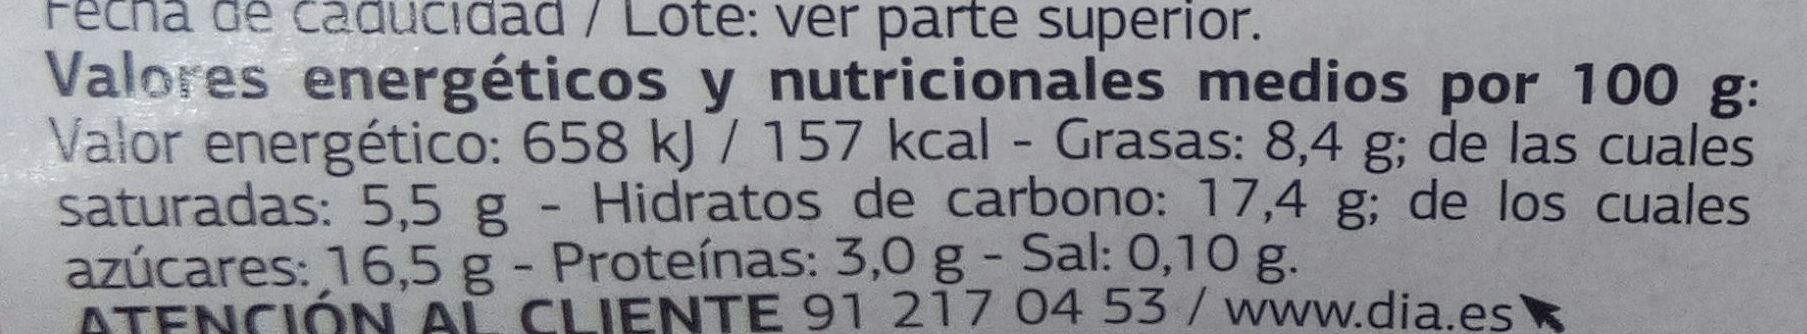 Yogurt estilo Griego con plátano y caramelo - Nutrition facts